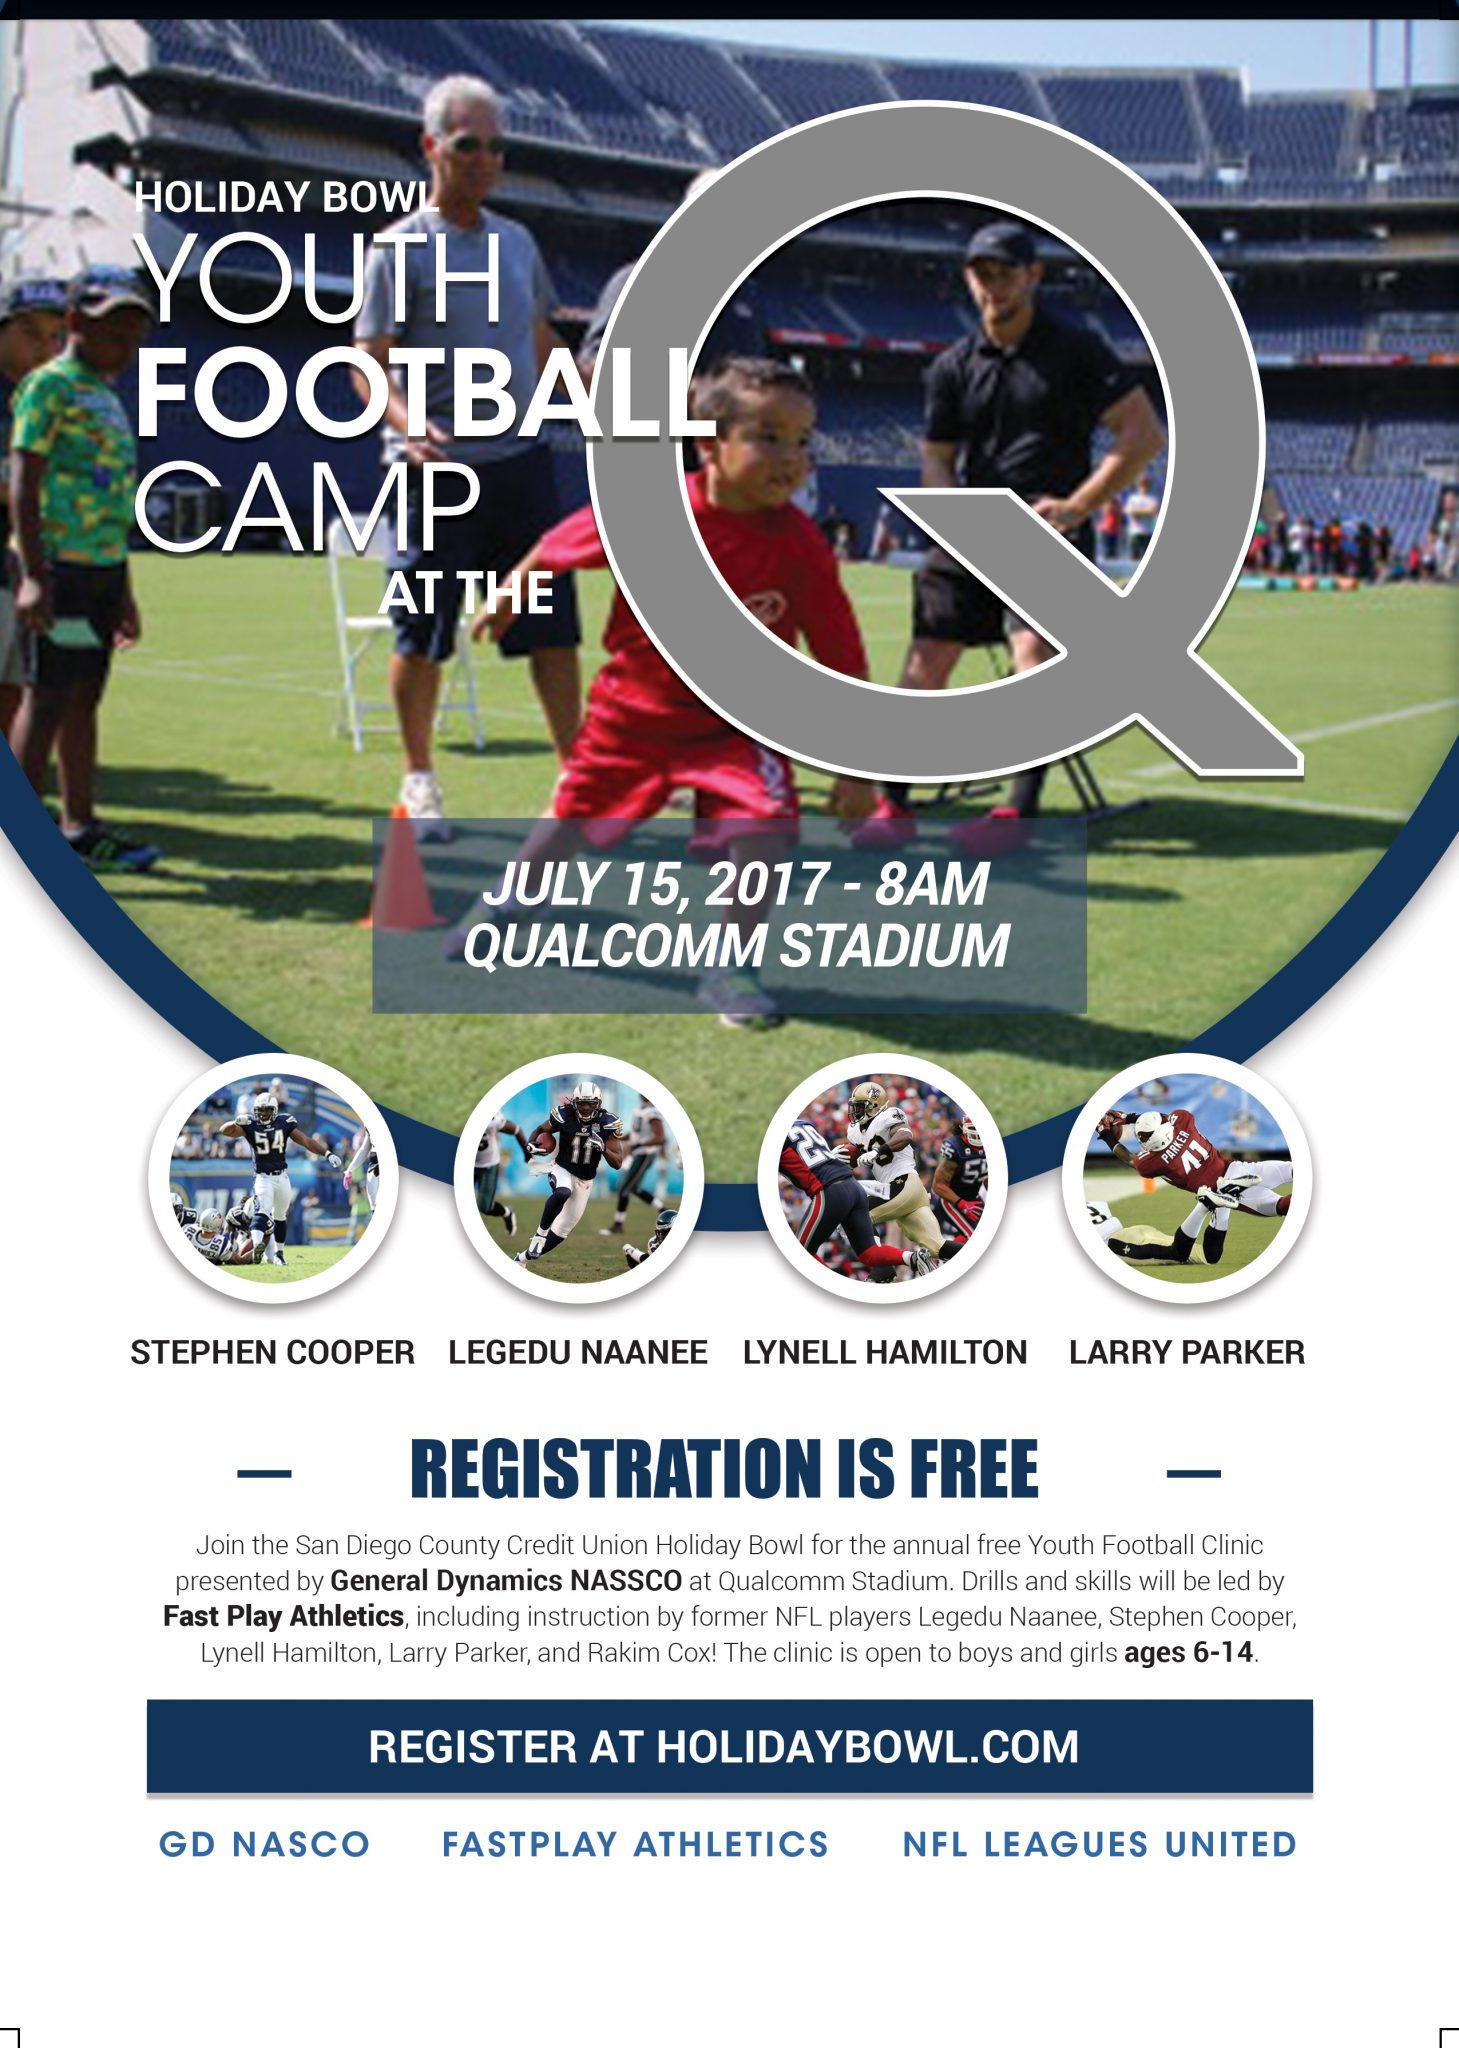 NFL LEAGUES UNITED Holiday Bowl Youth Football Clinic - NFL